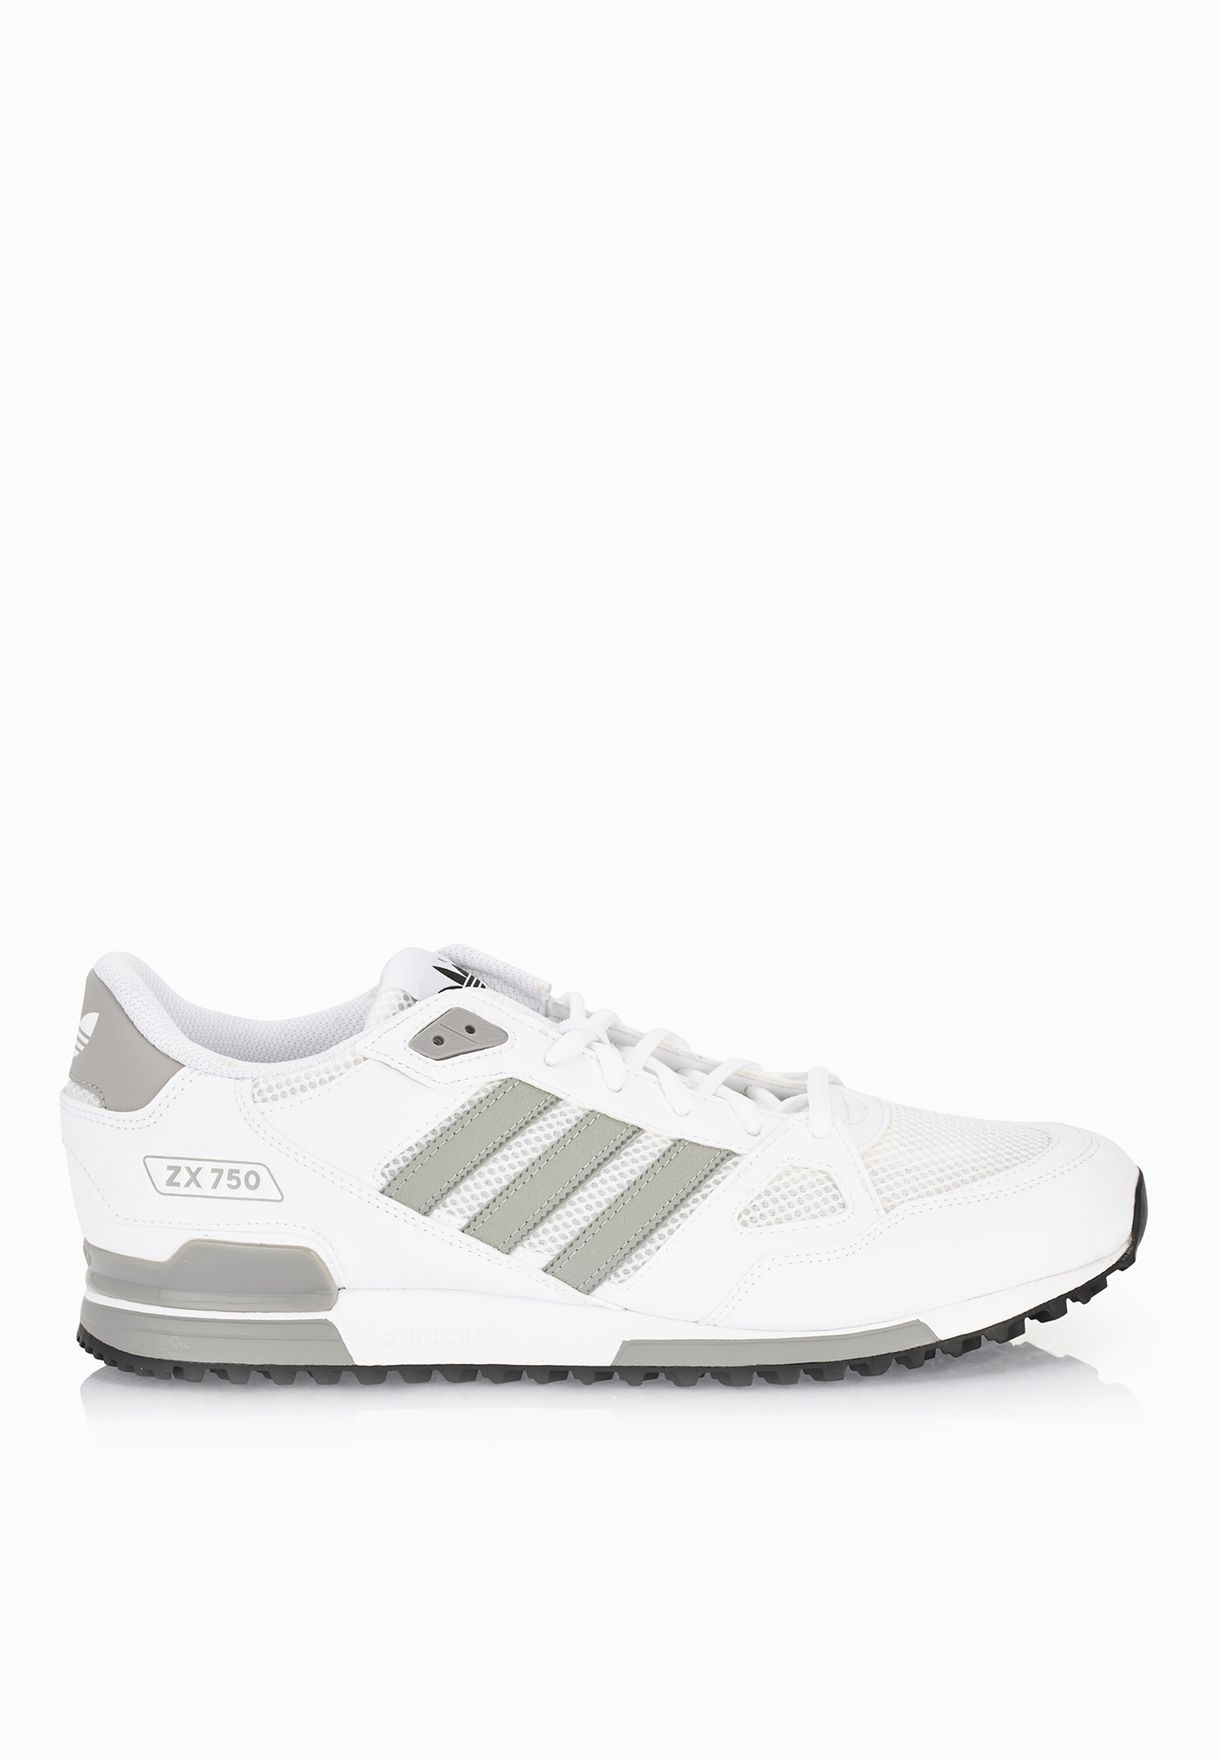 separation shoes 7ee4b 77d78 ... new style shop adidas originals white zx 750 s76189 for men in saudi  ad478sh03ptc 00545 94fff